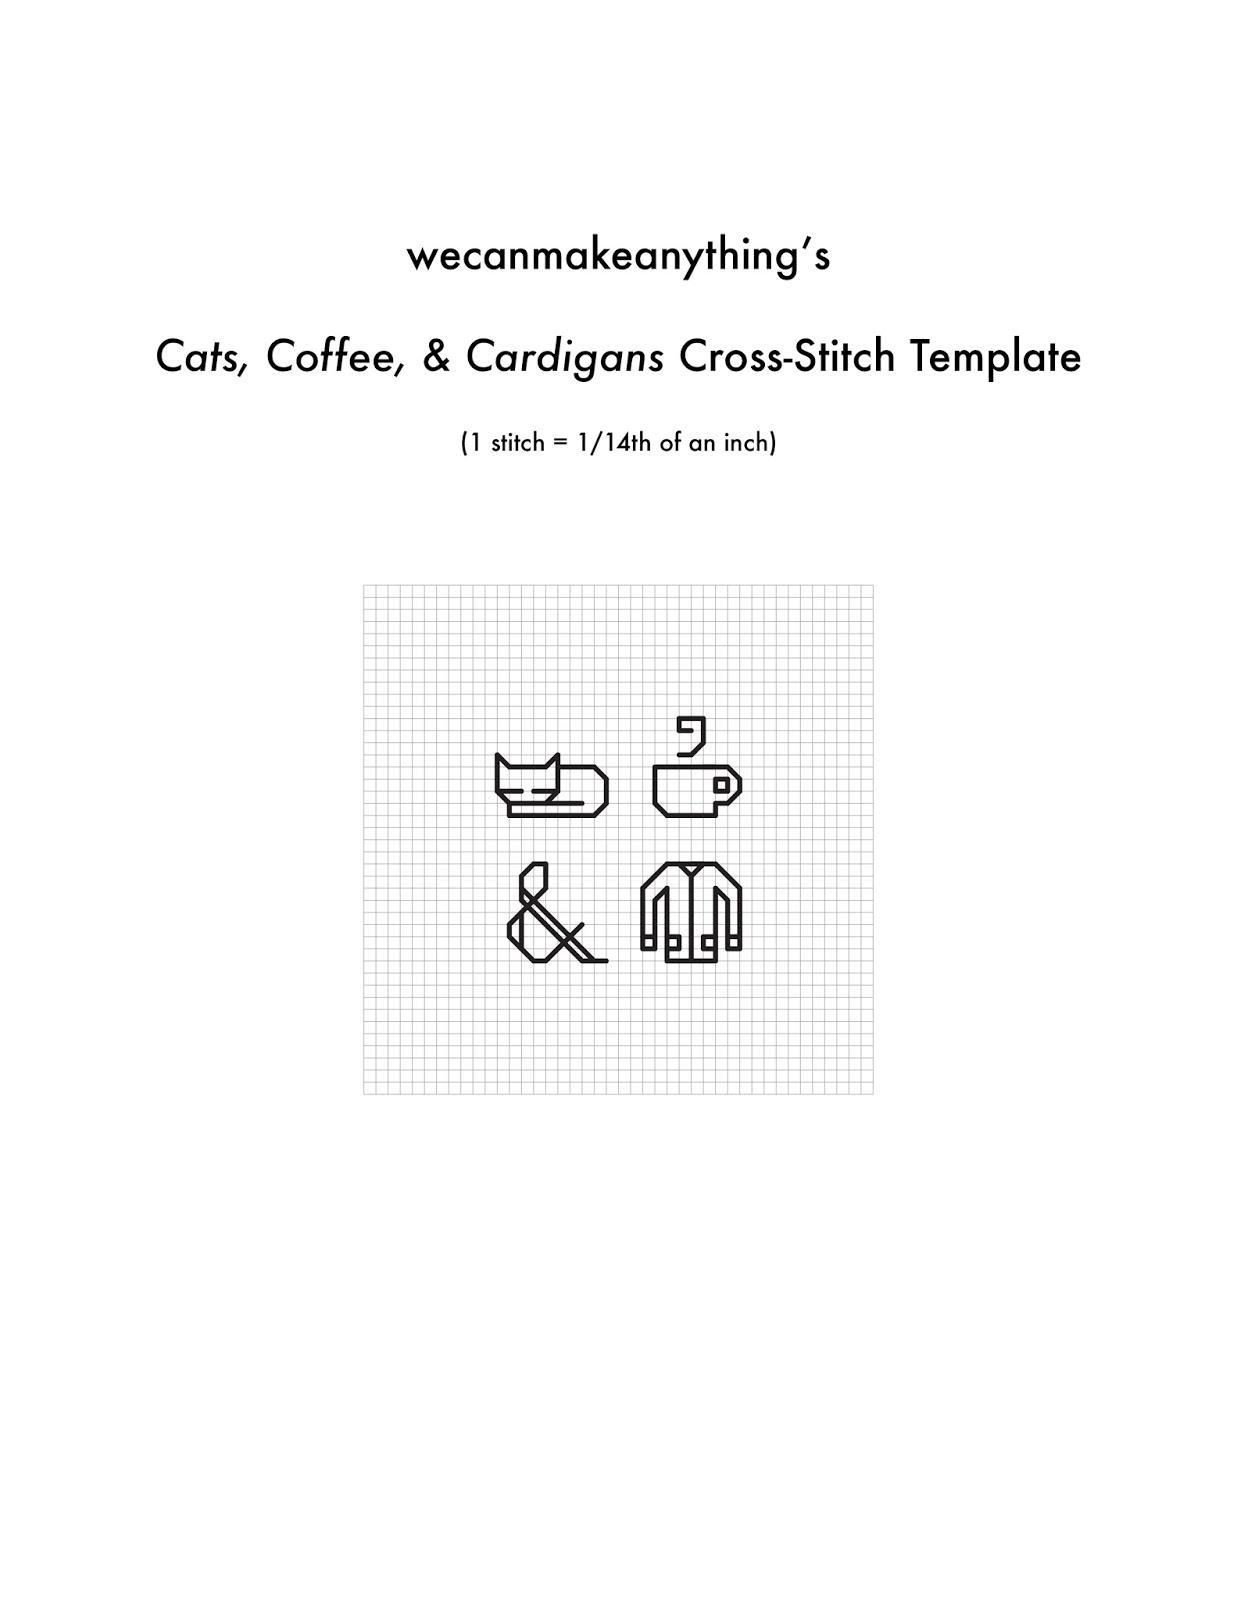 We Can Make Anything: cats, coffee, & cardigans cross stitch